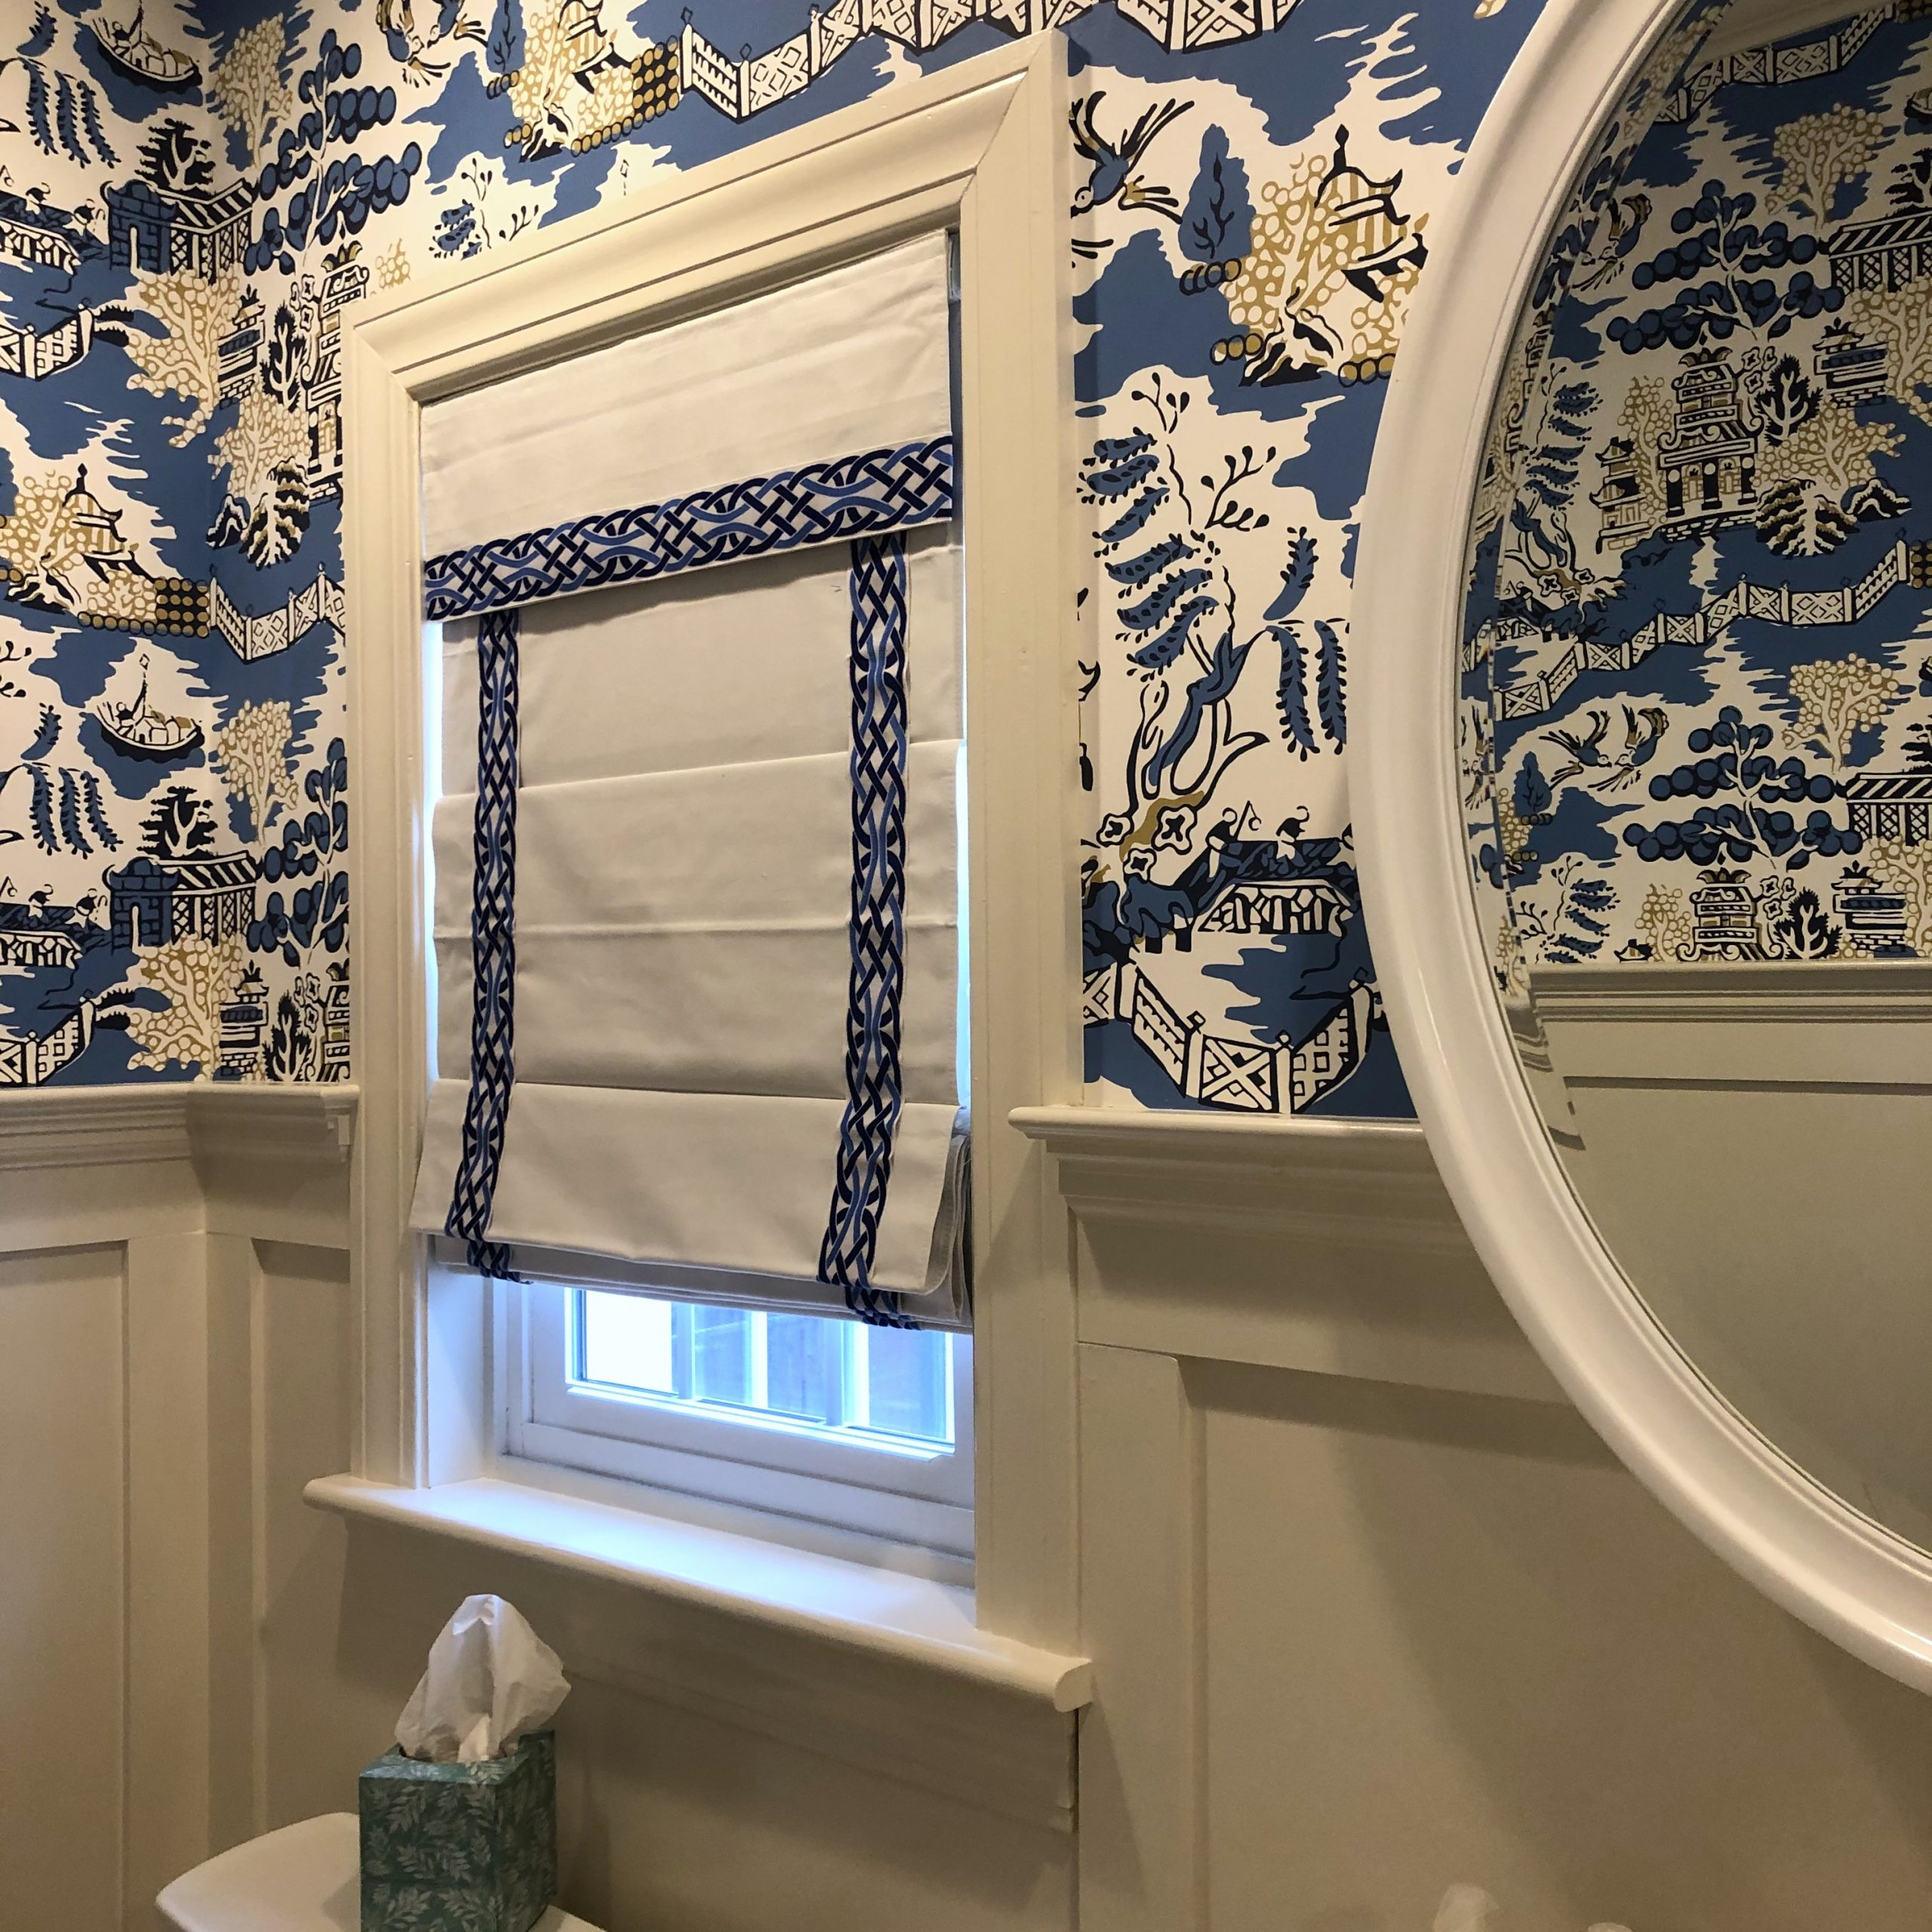 Newest Blended Fabric Hidden Garden Chinoiserie Wall Hangings With Rod Inside How To Make Budget Window Treatments Look Expensive (View 20 of 20)